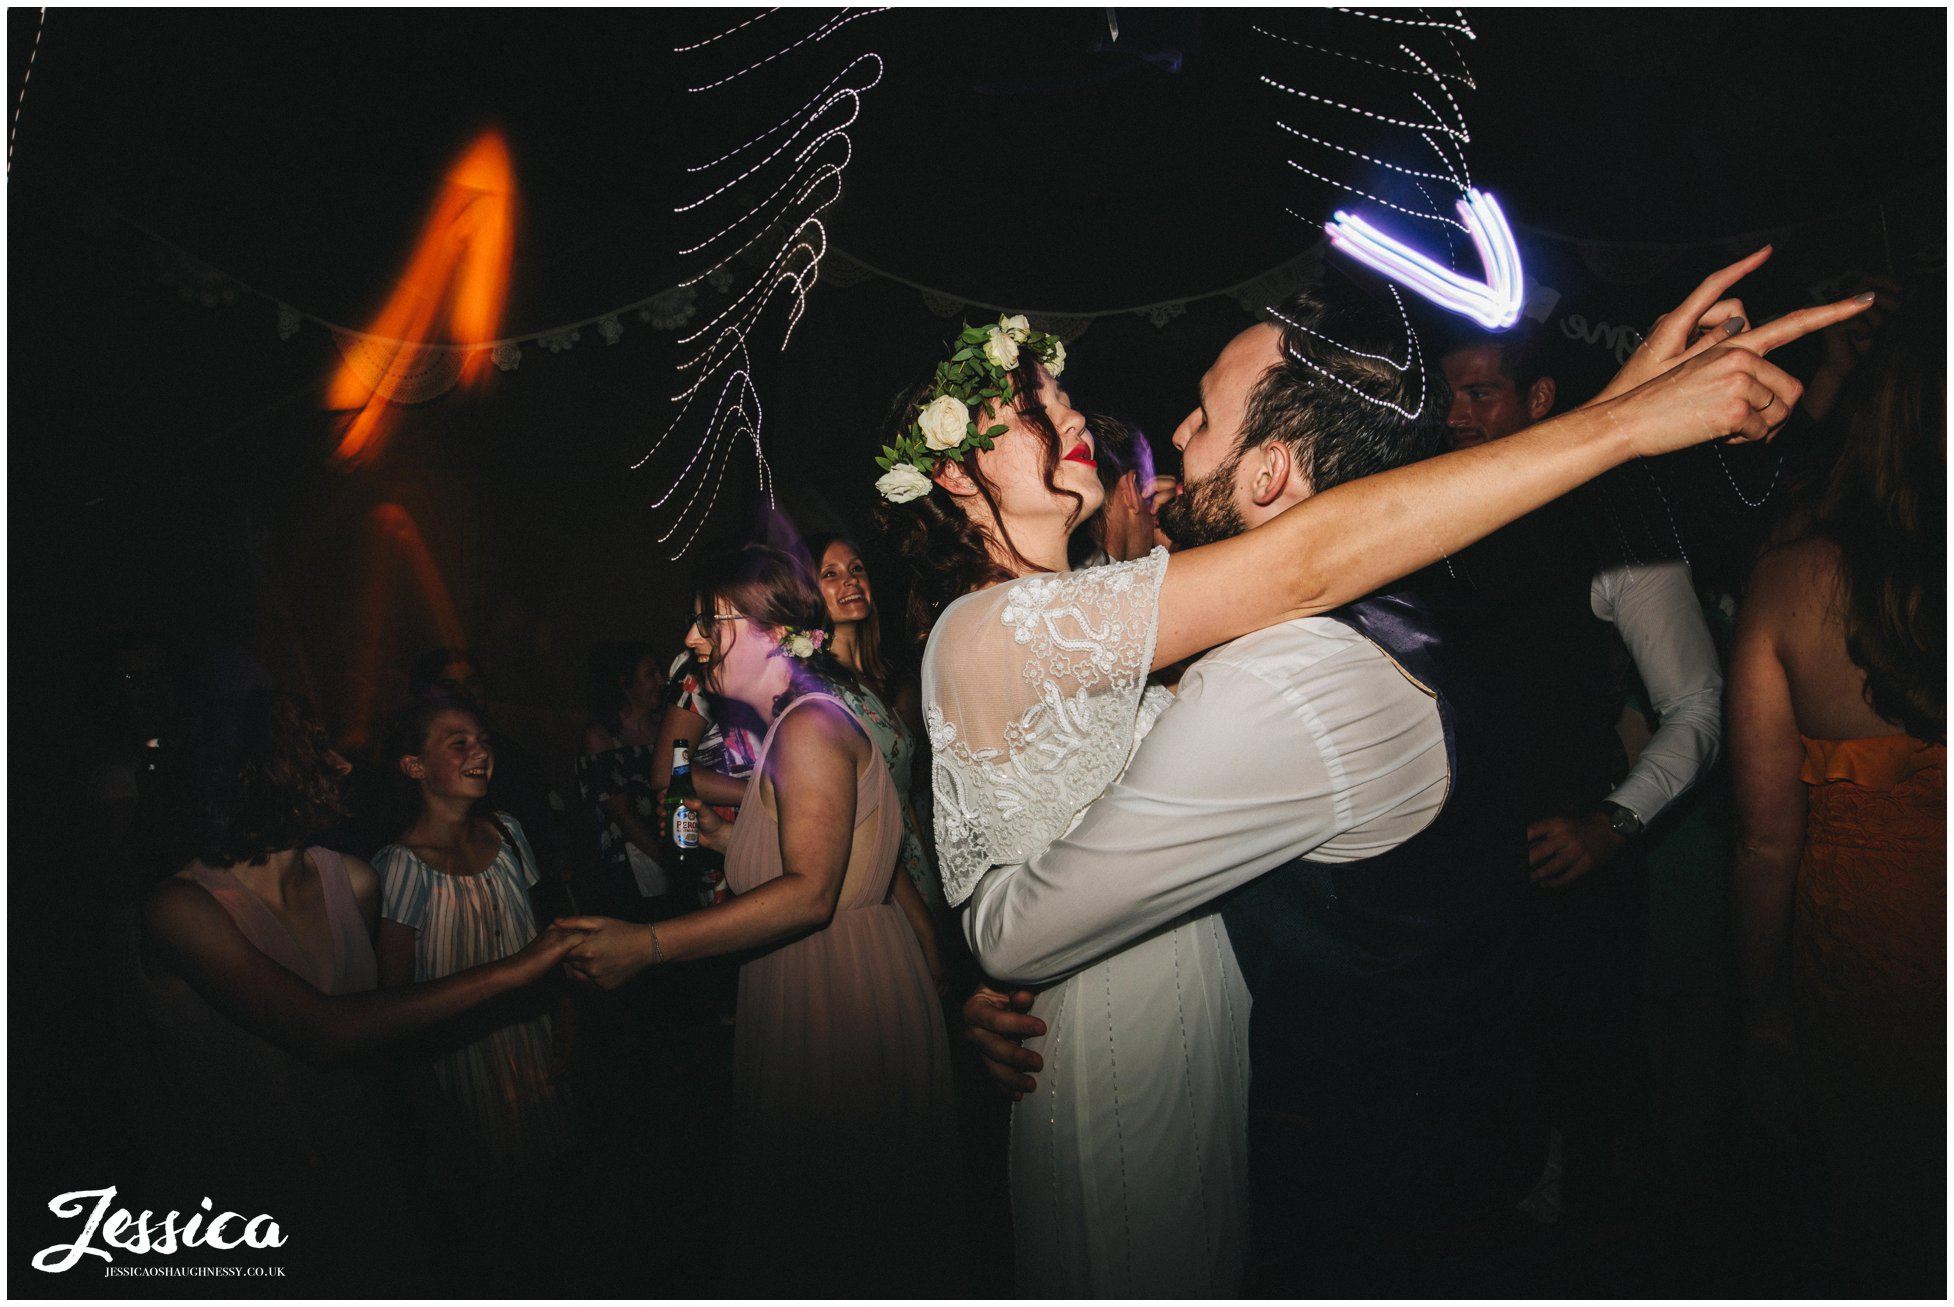 husband and wife dance together to their wedding band